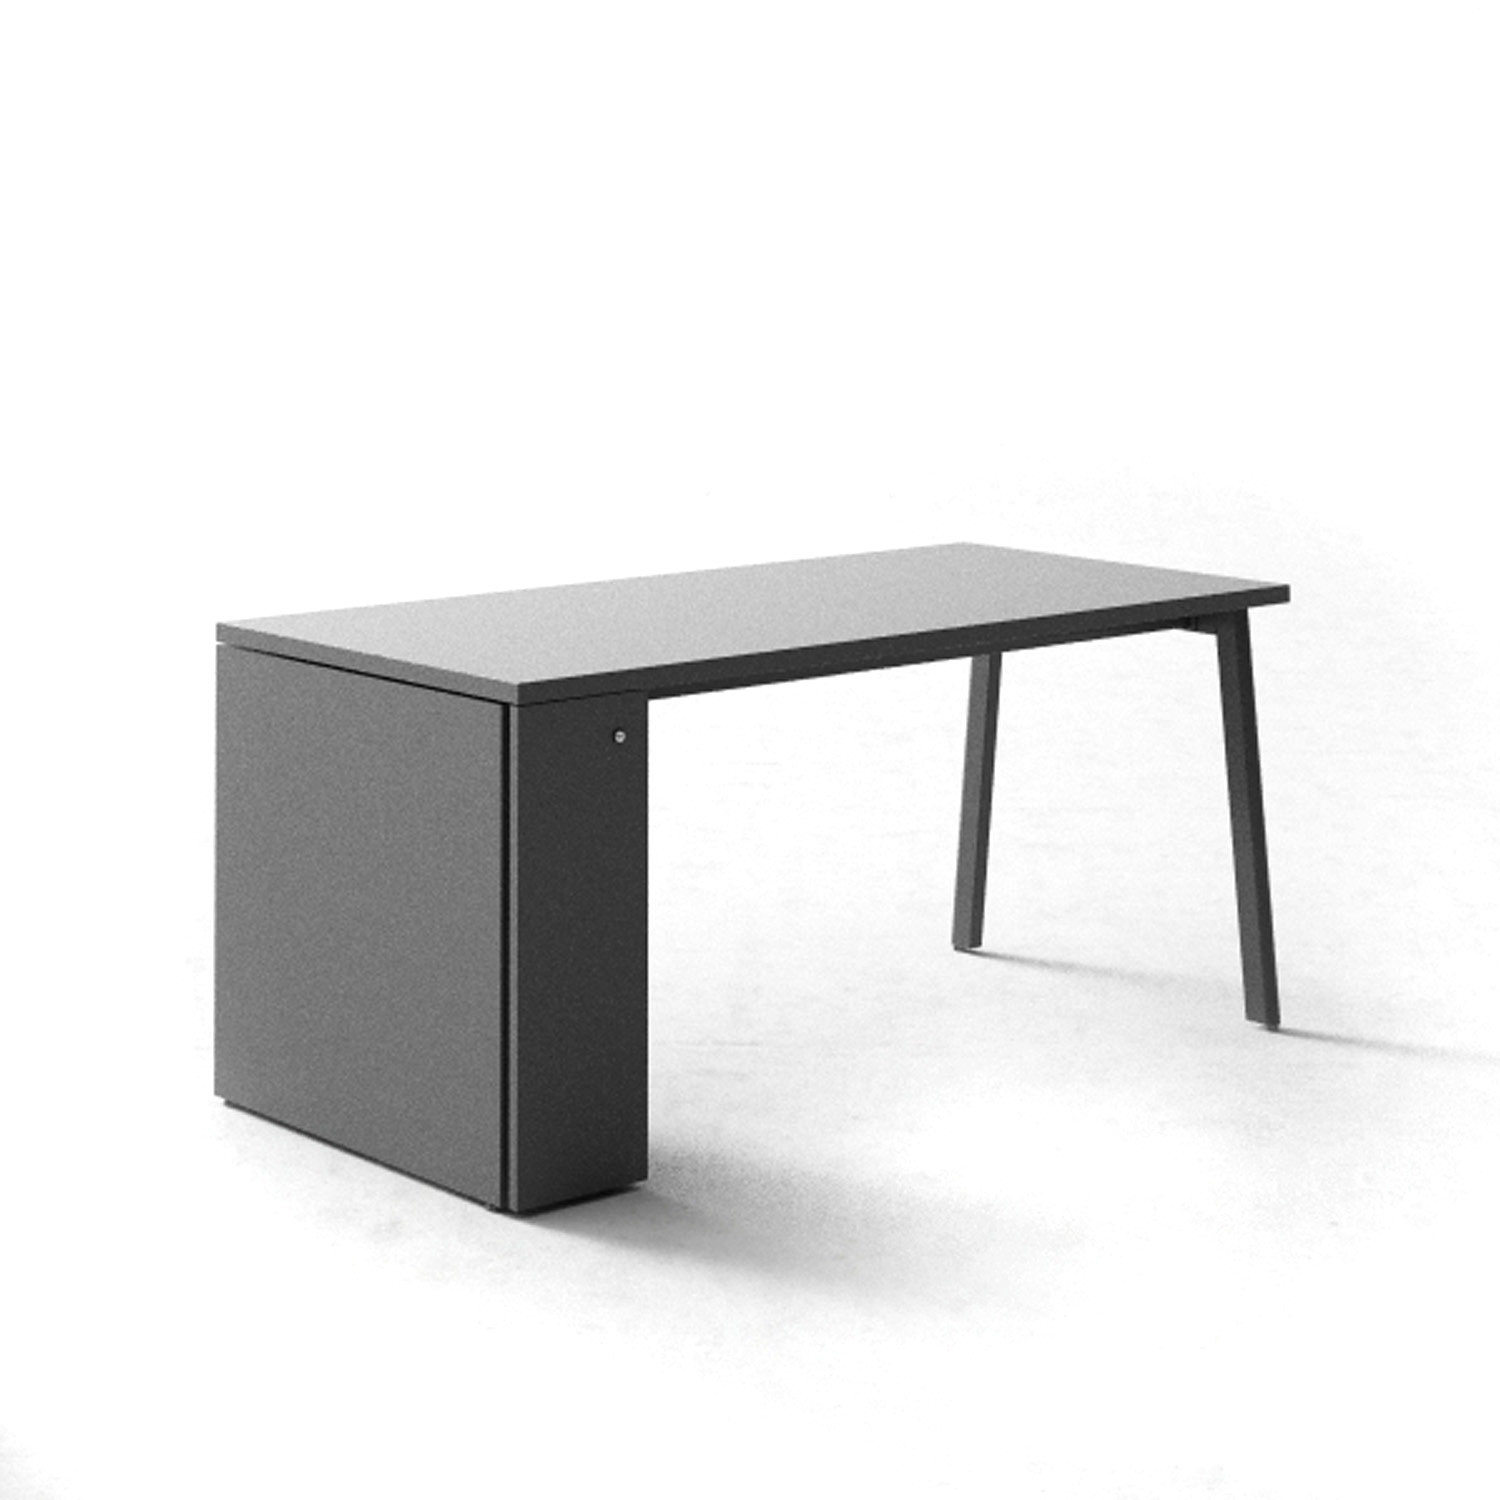 M10 Desks by Forma 5